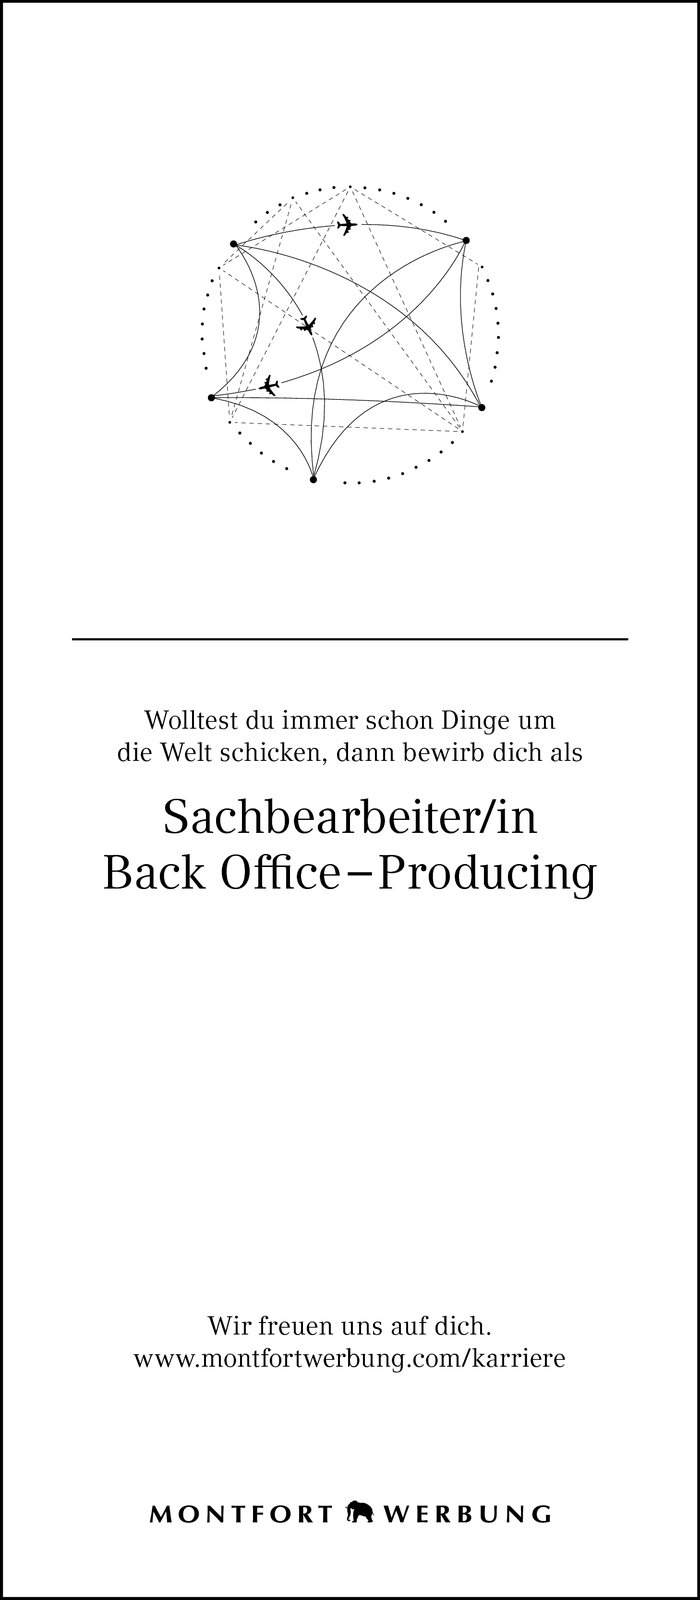 sachbearbeiterin-back-office-producing